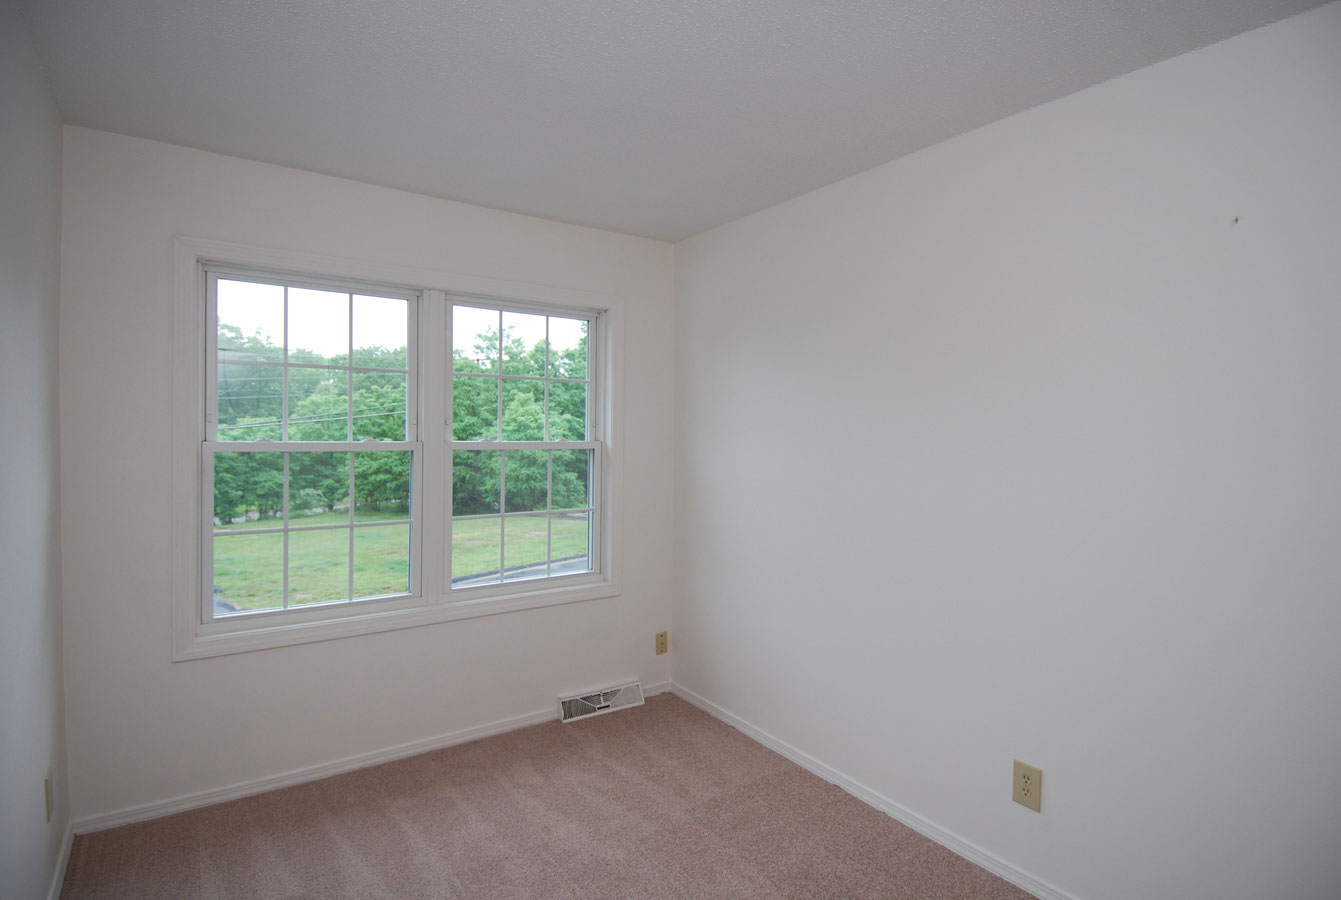 3 Bedroom Apartments Manchester Nh 3 Bedroom Apartment In